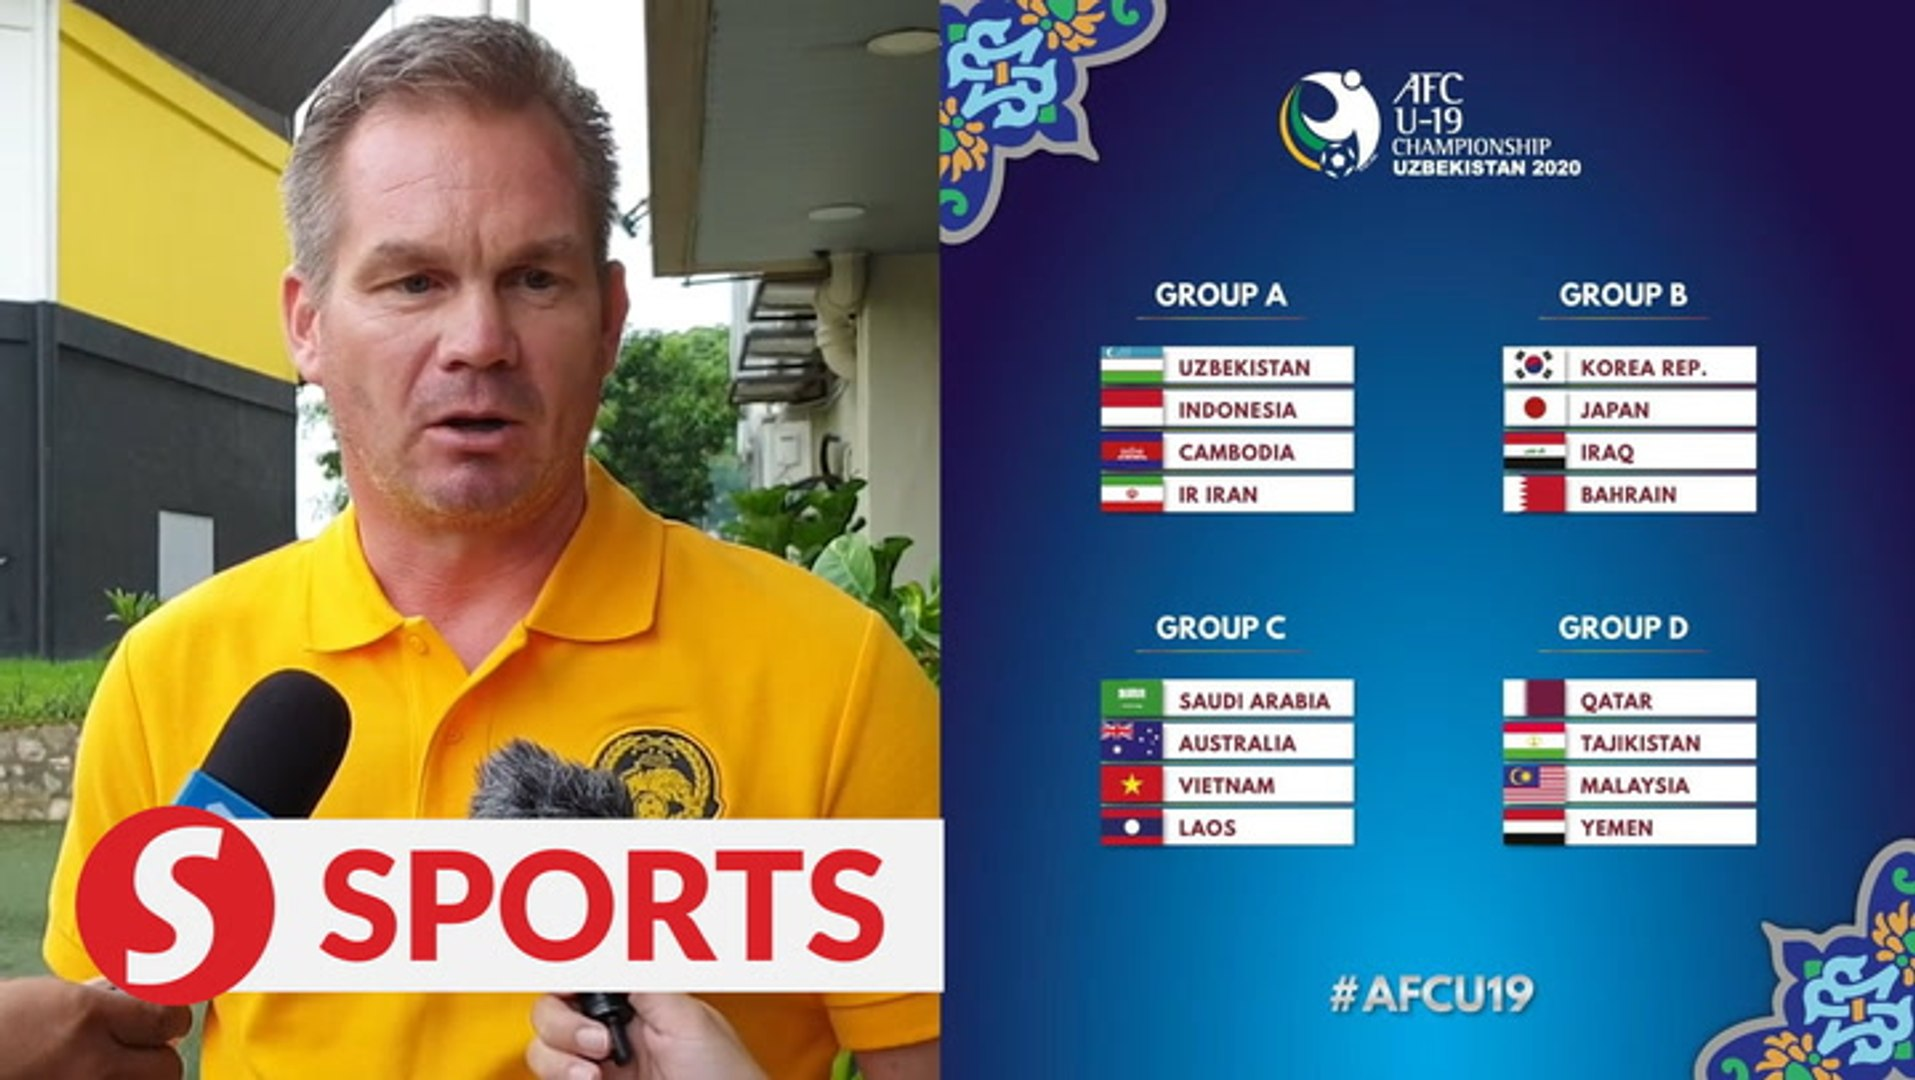 Malaysia in for a tricky ride in the AFC Under-19 Championship, says coach Maloney